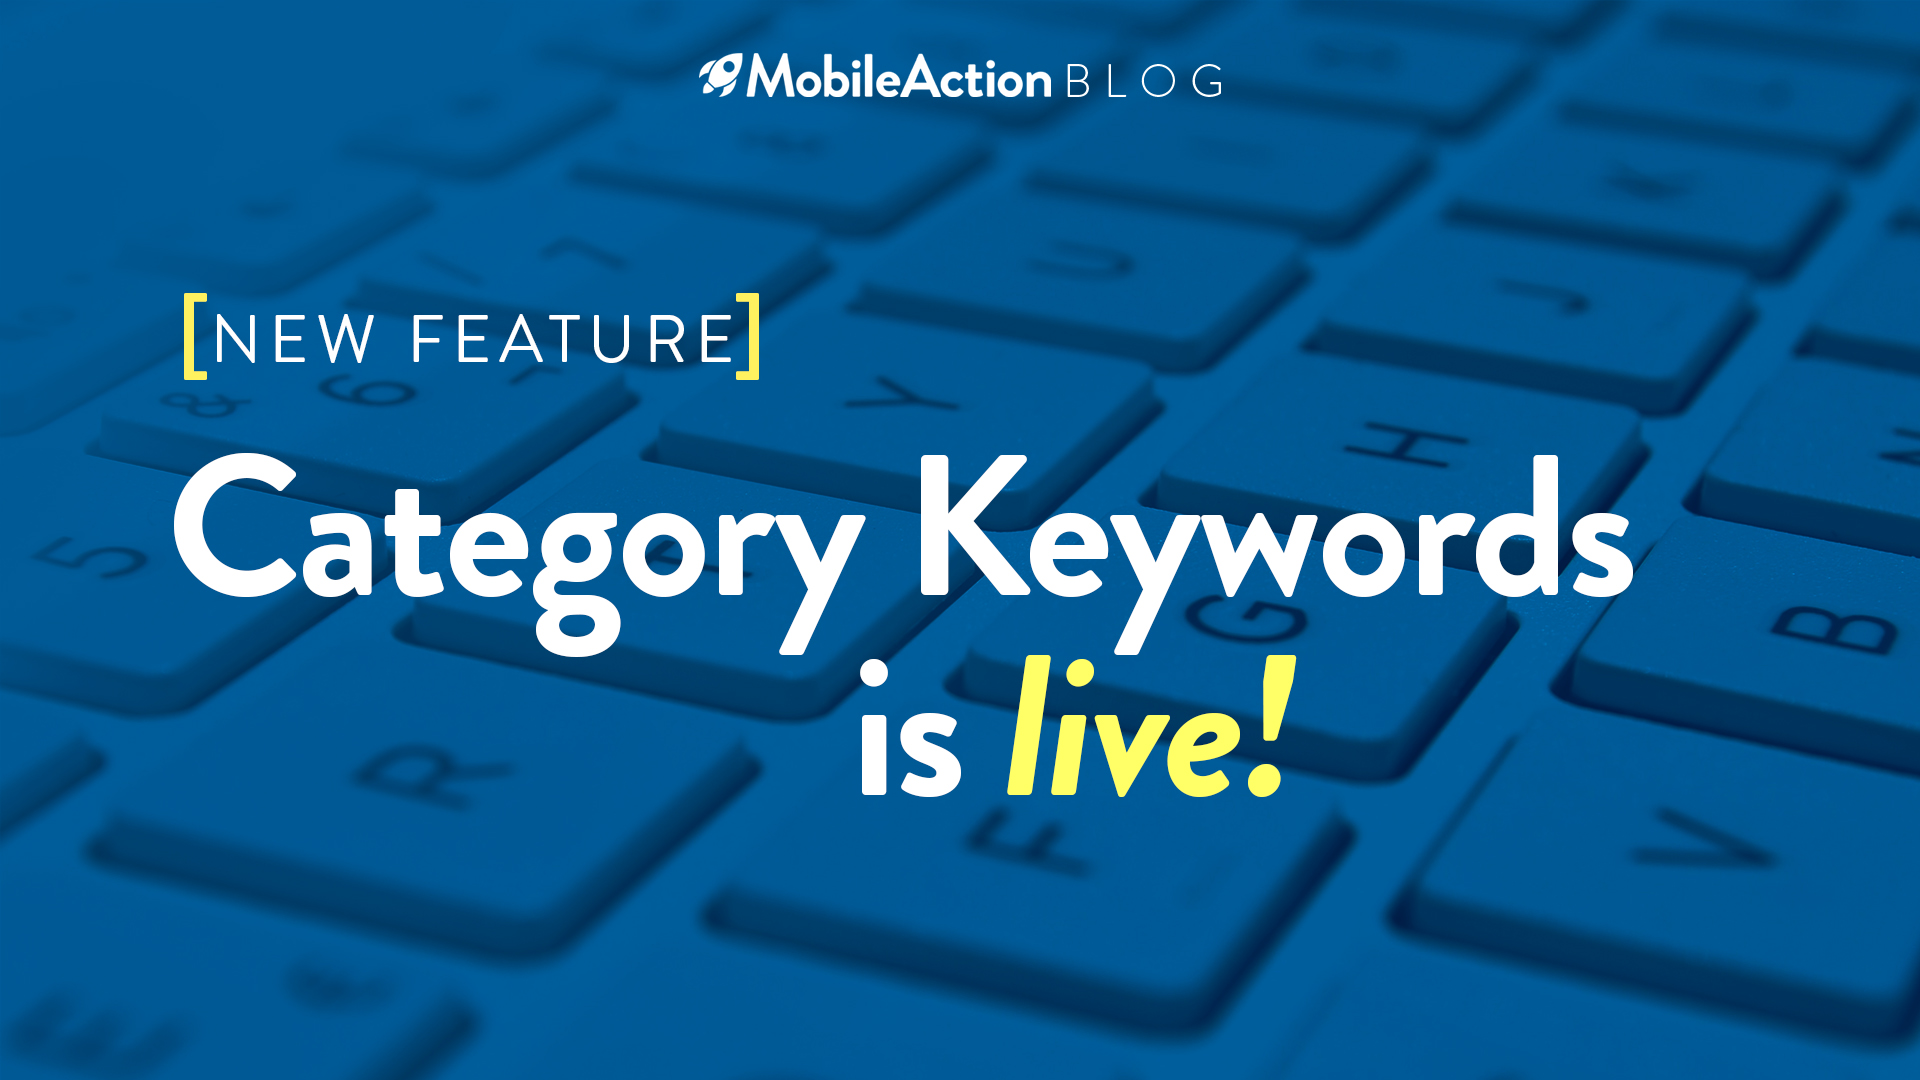 image depicting category keywords feature of mobile action